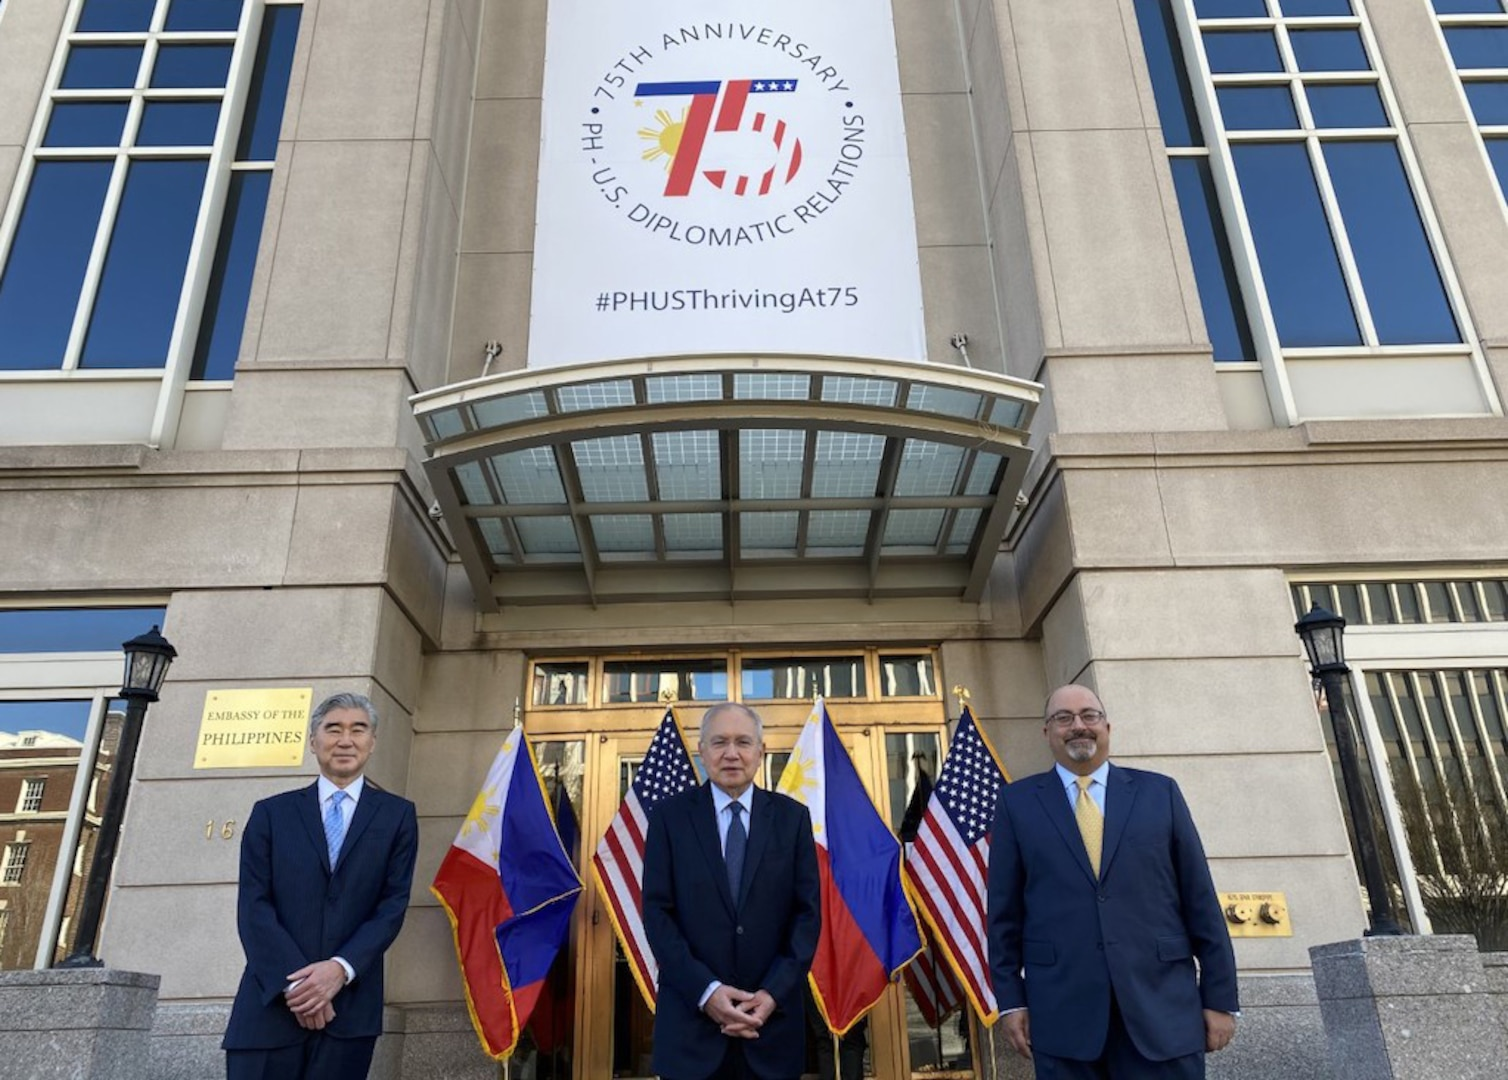 Philippines and United States Celebrate 75 Years of Diplomatic Relations